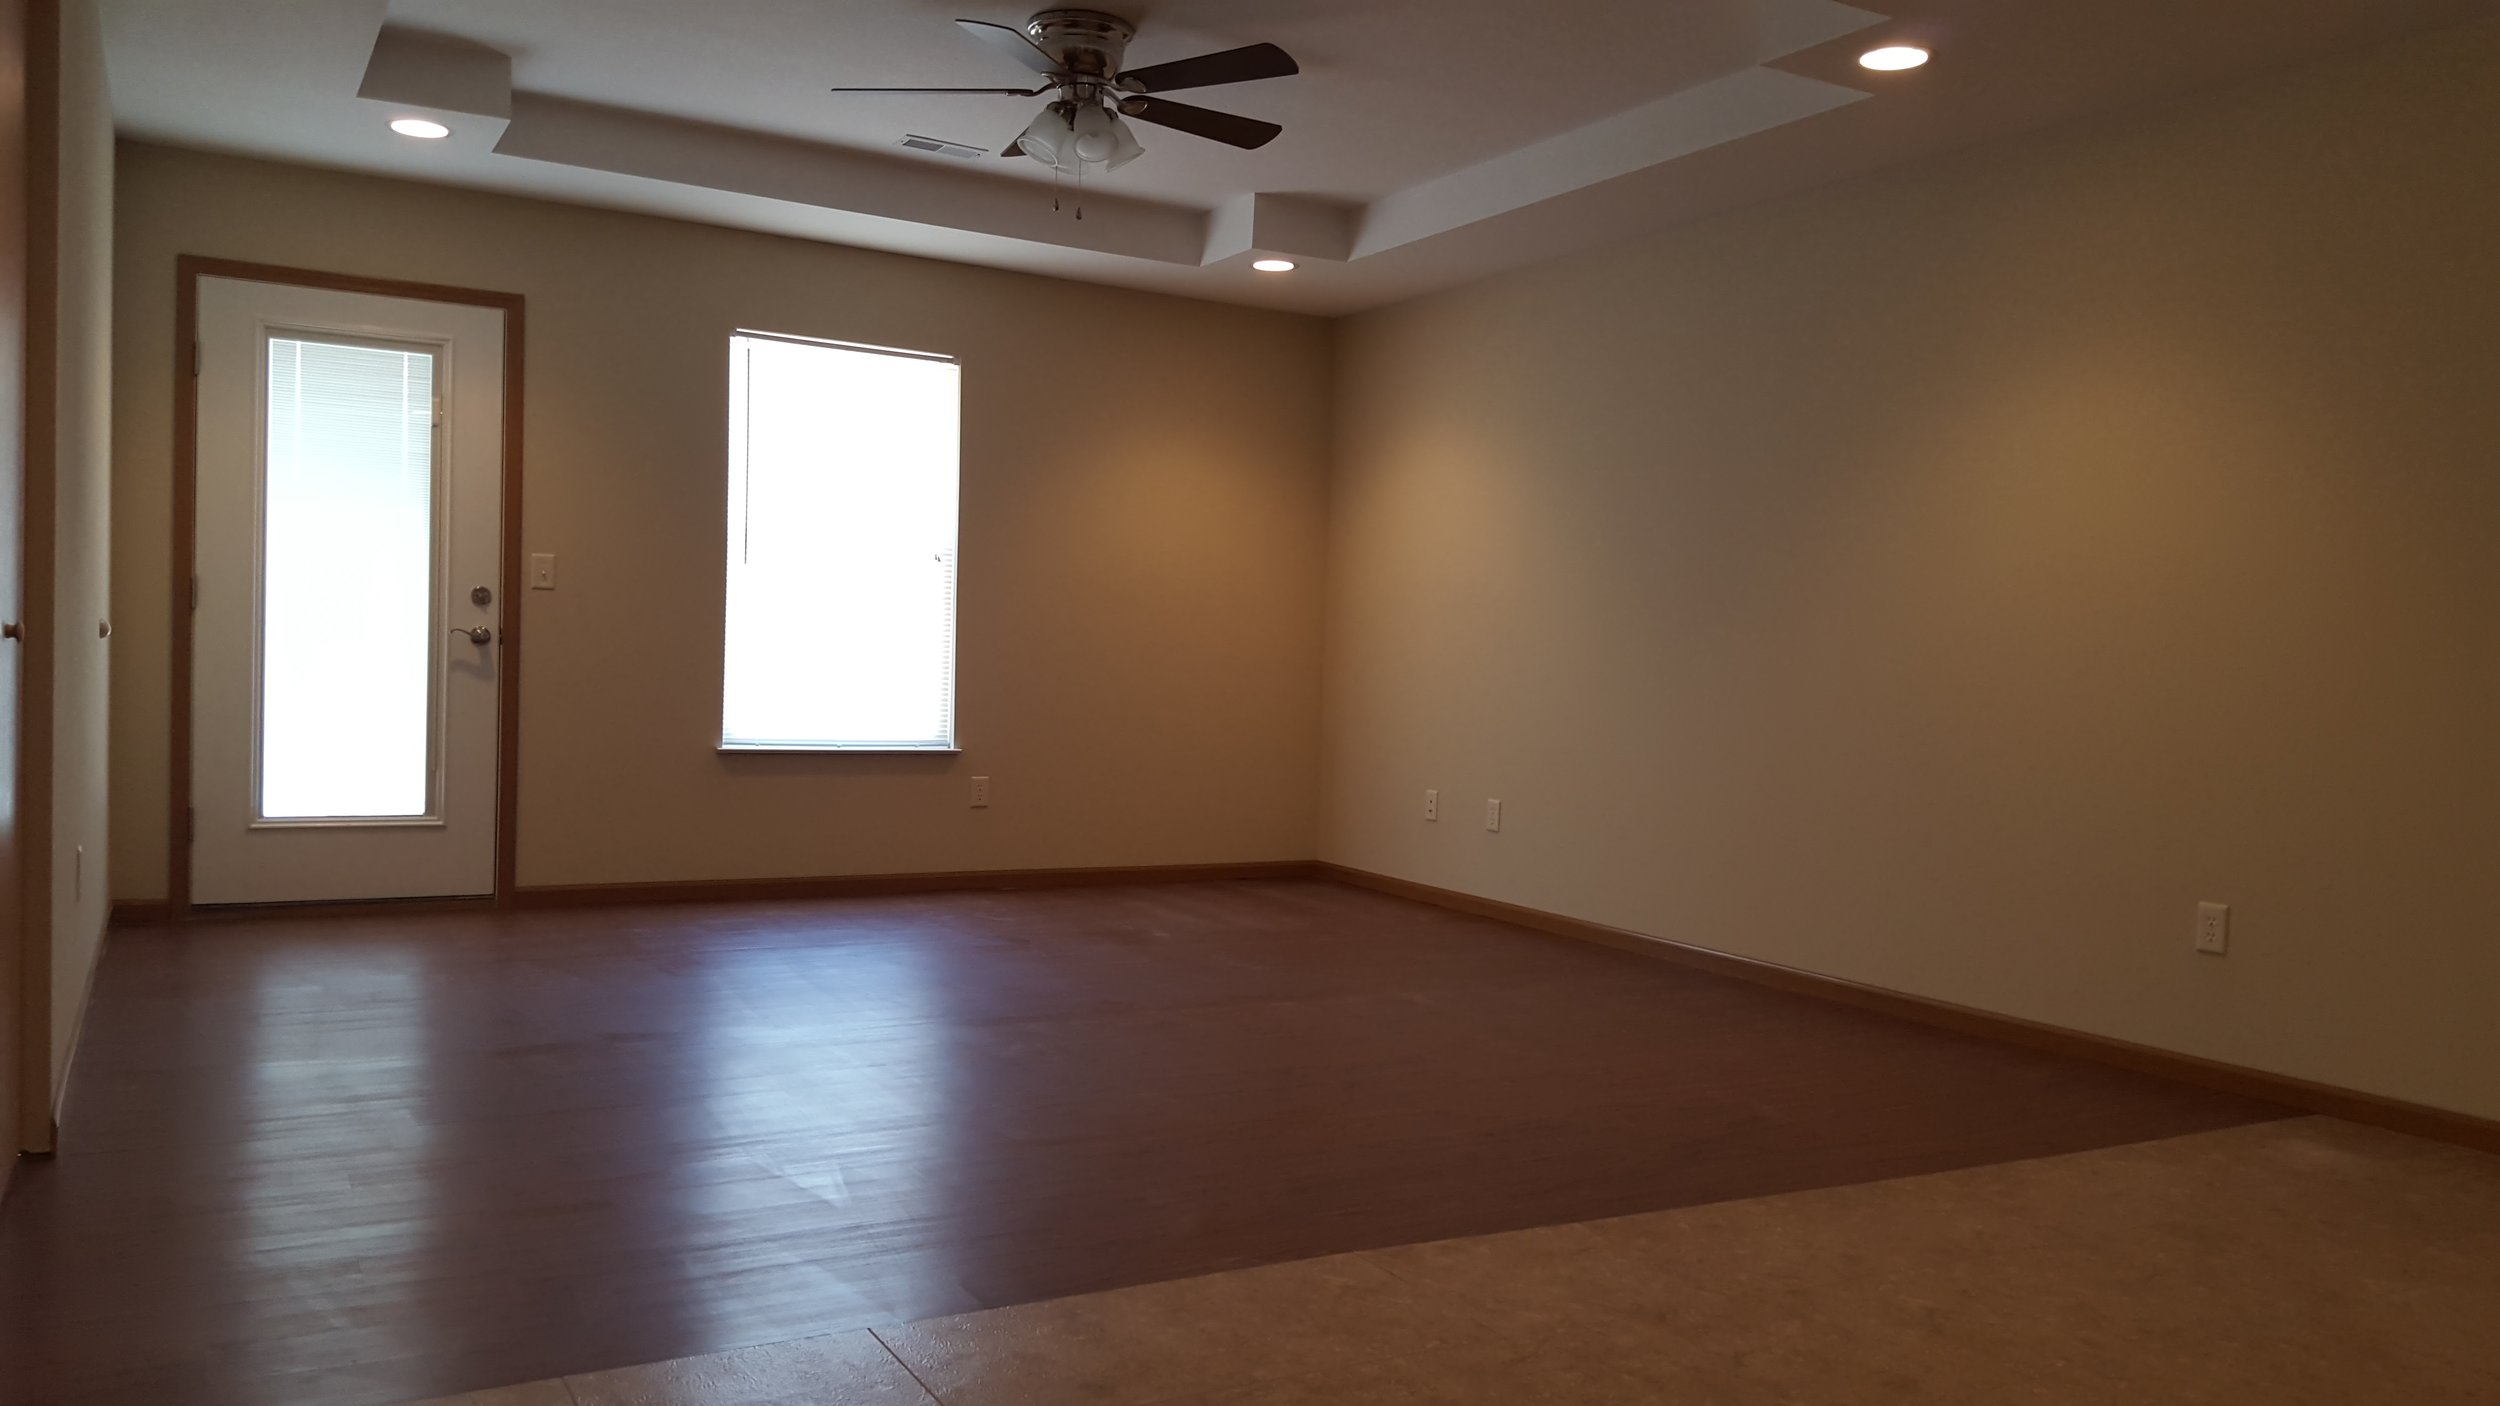 2 bed garage living room.jpg